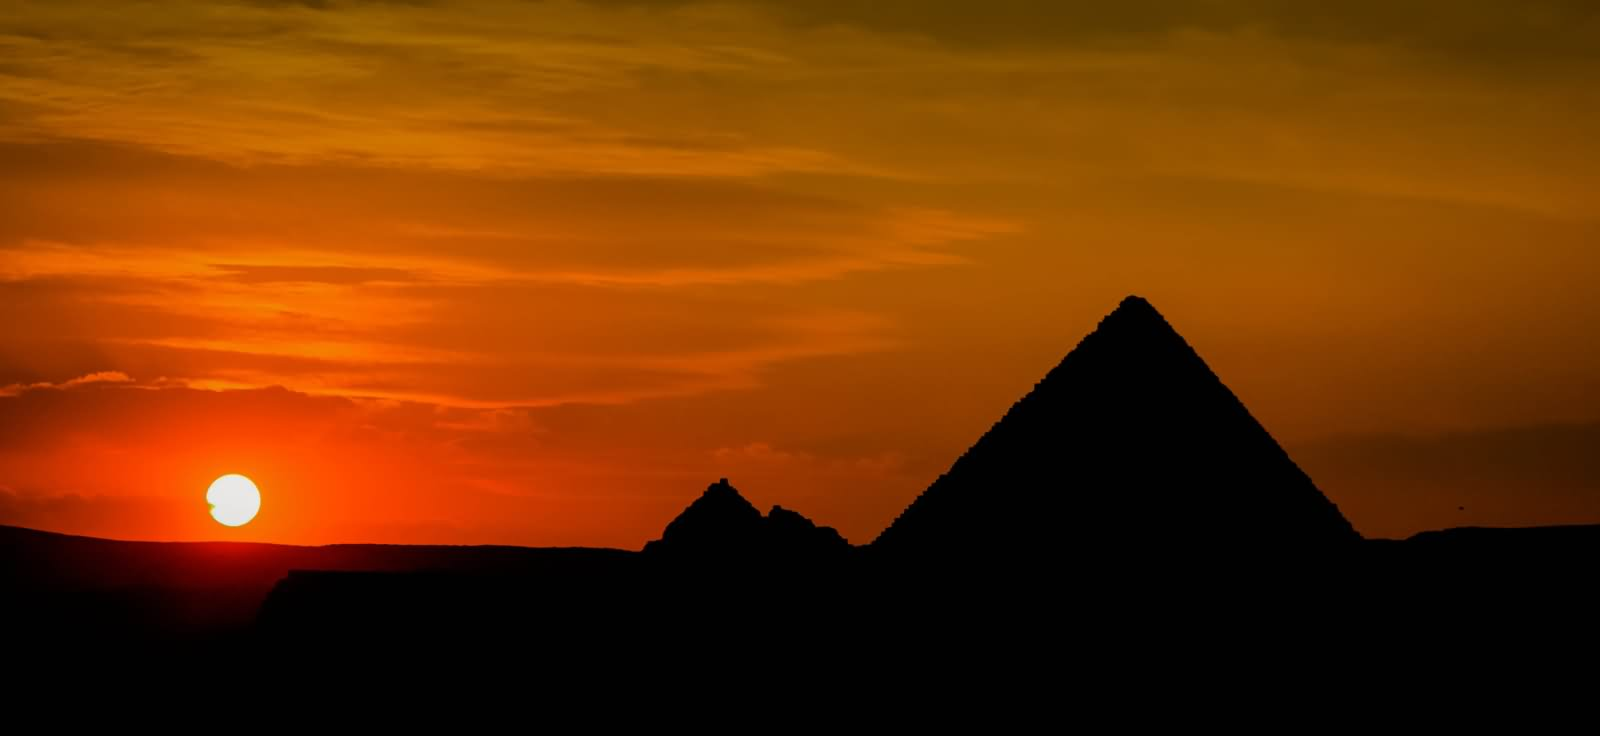 Silhouette View Of Egyptian Pyramids During Sunset